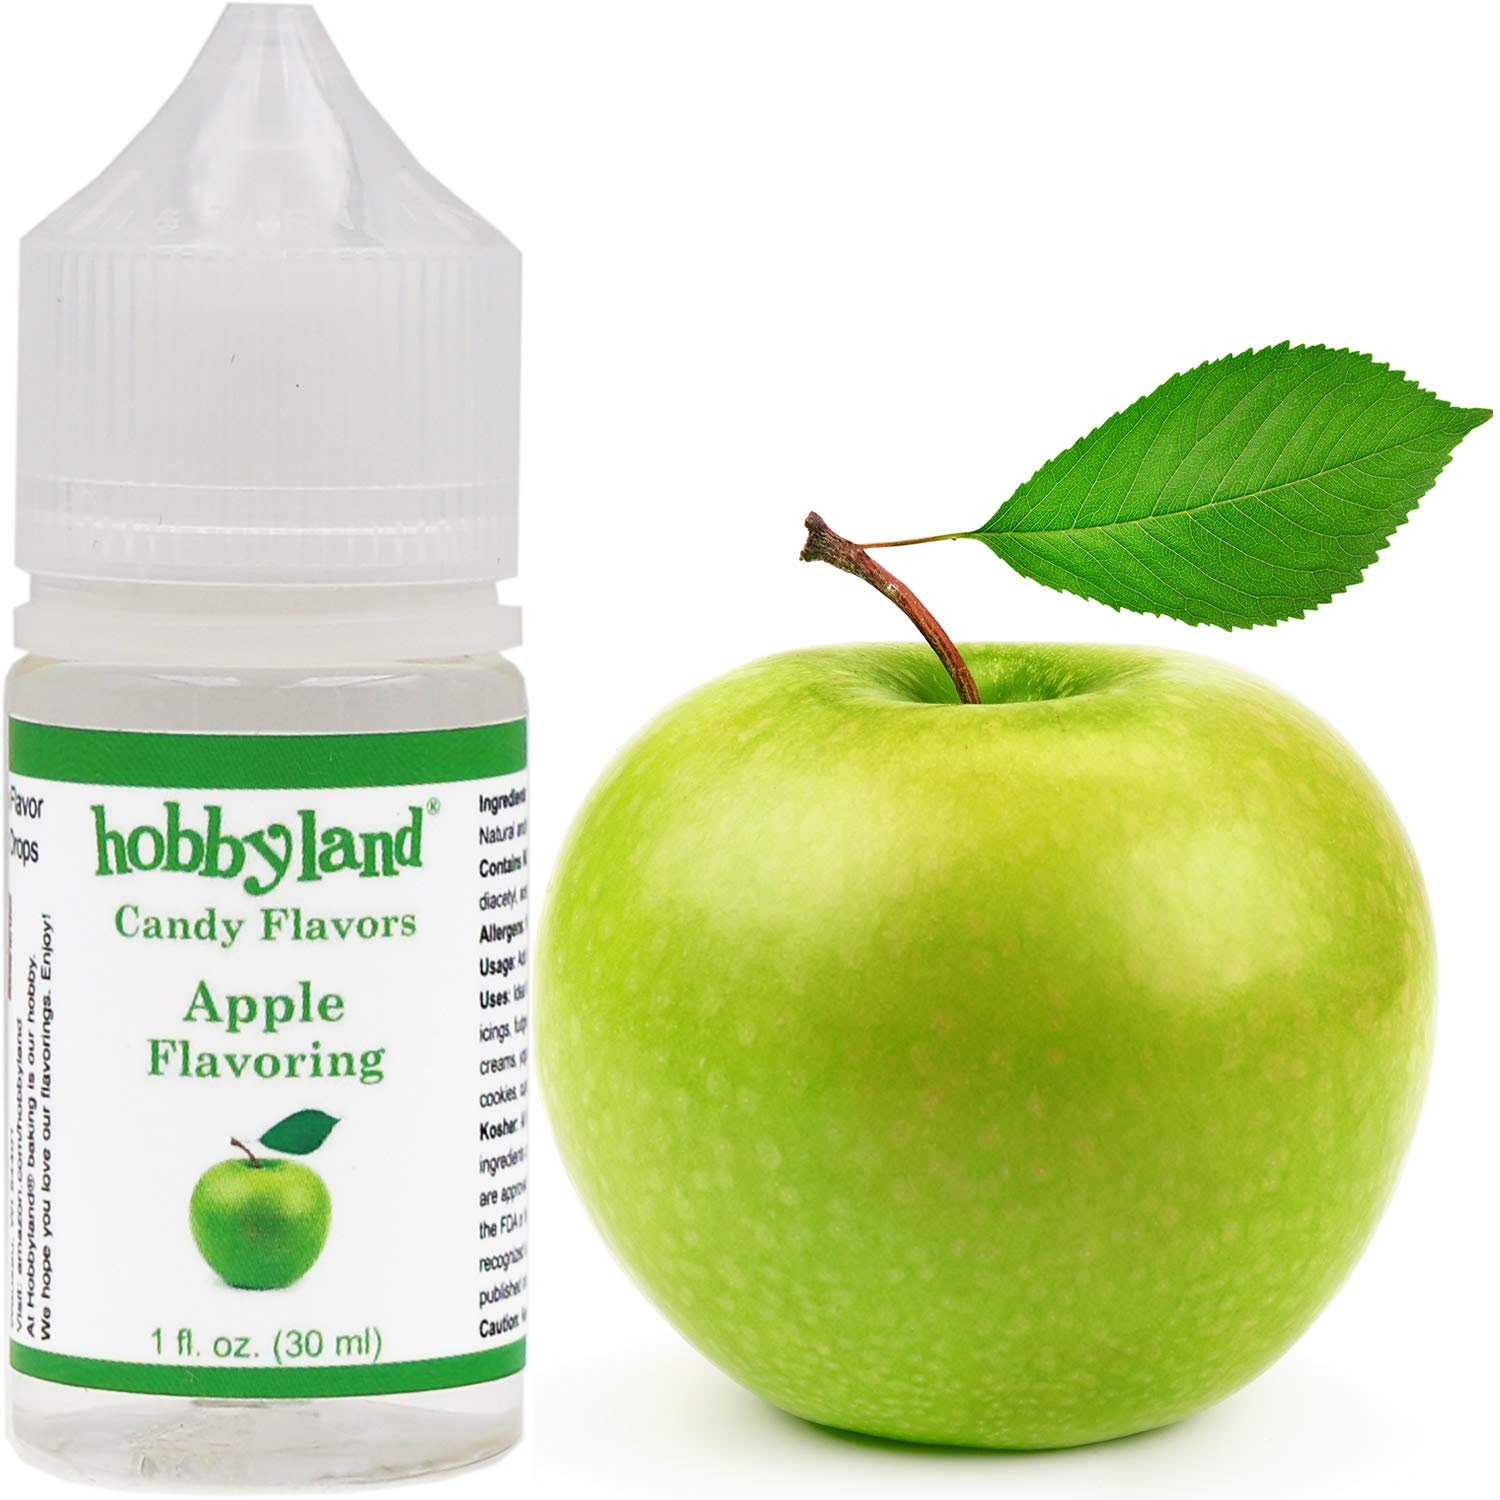 Hobbyland Candy Flavors (Apple Flavoring, 1 Fl Oz), Apple Concentrated Flavor Drops